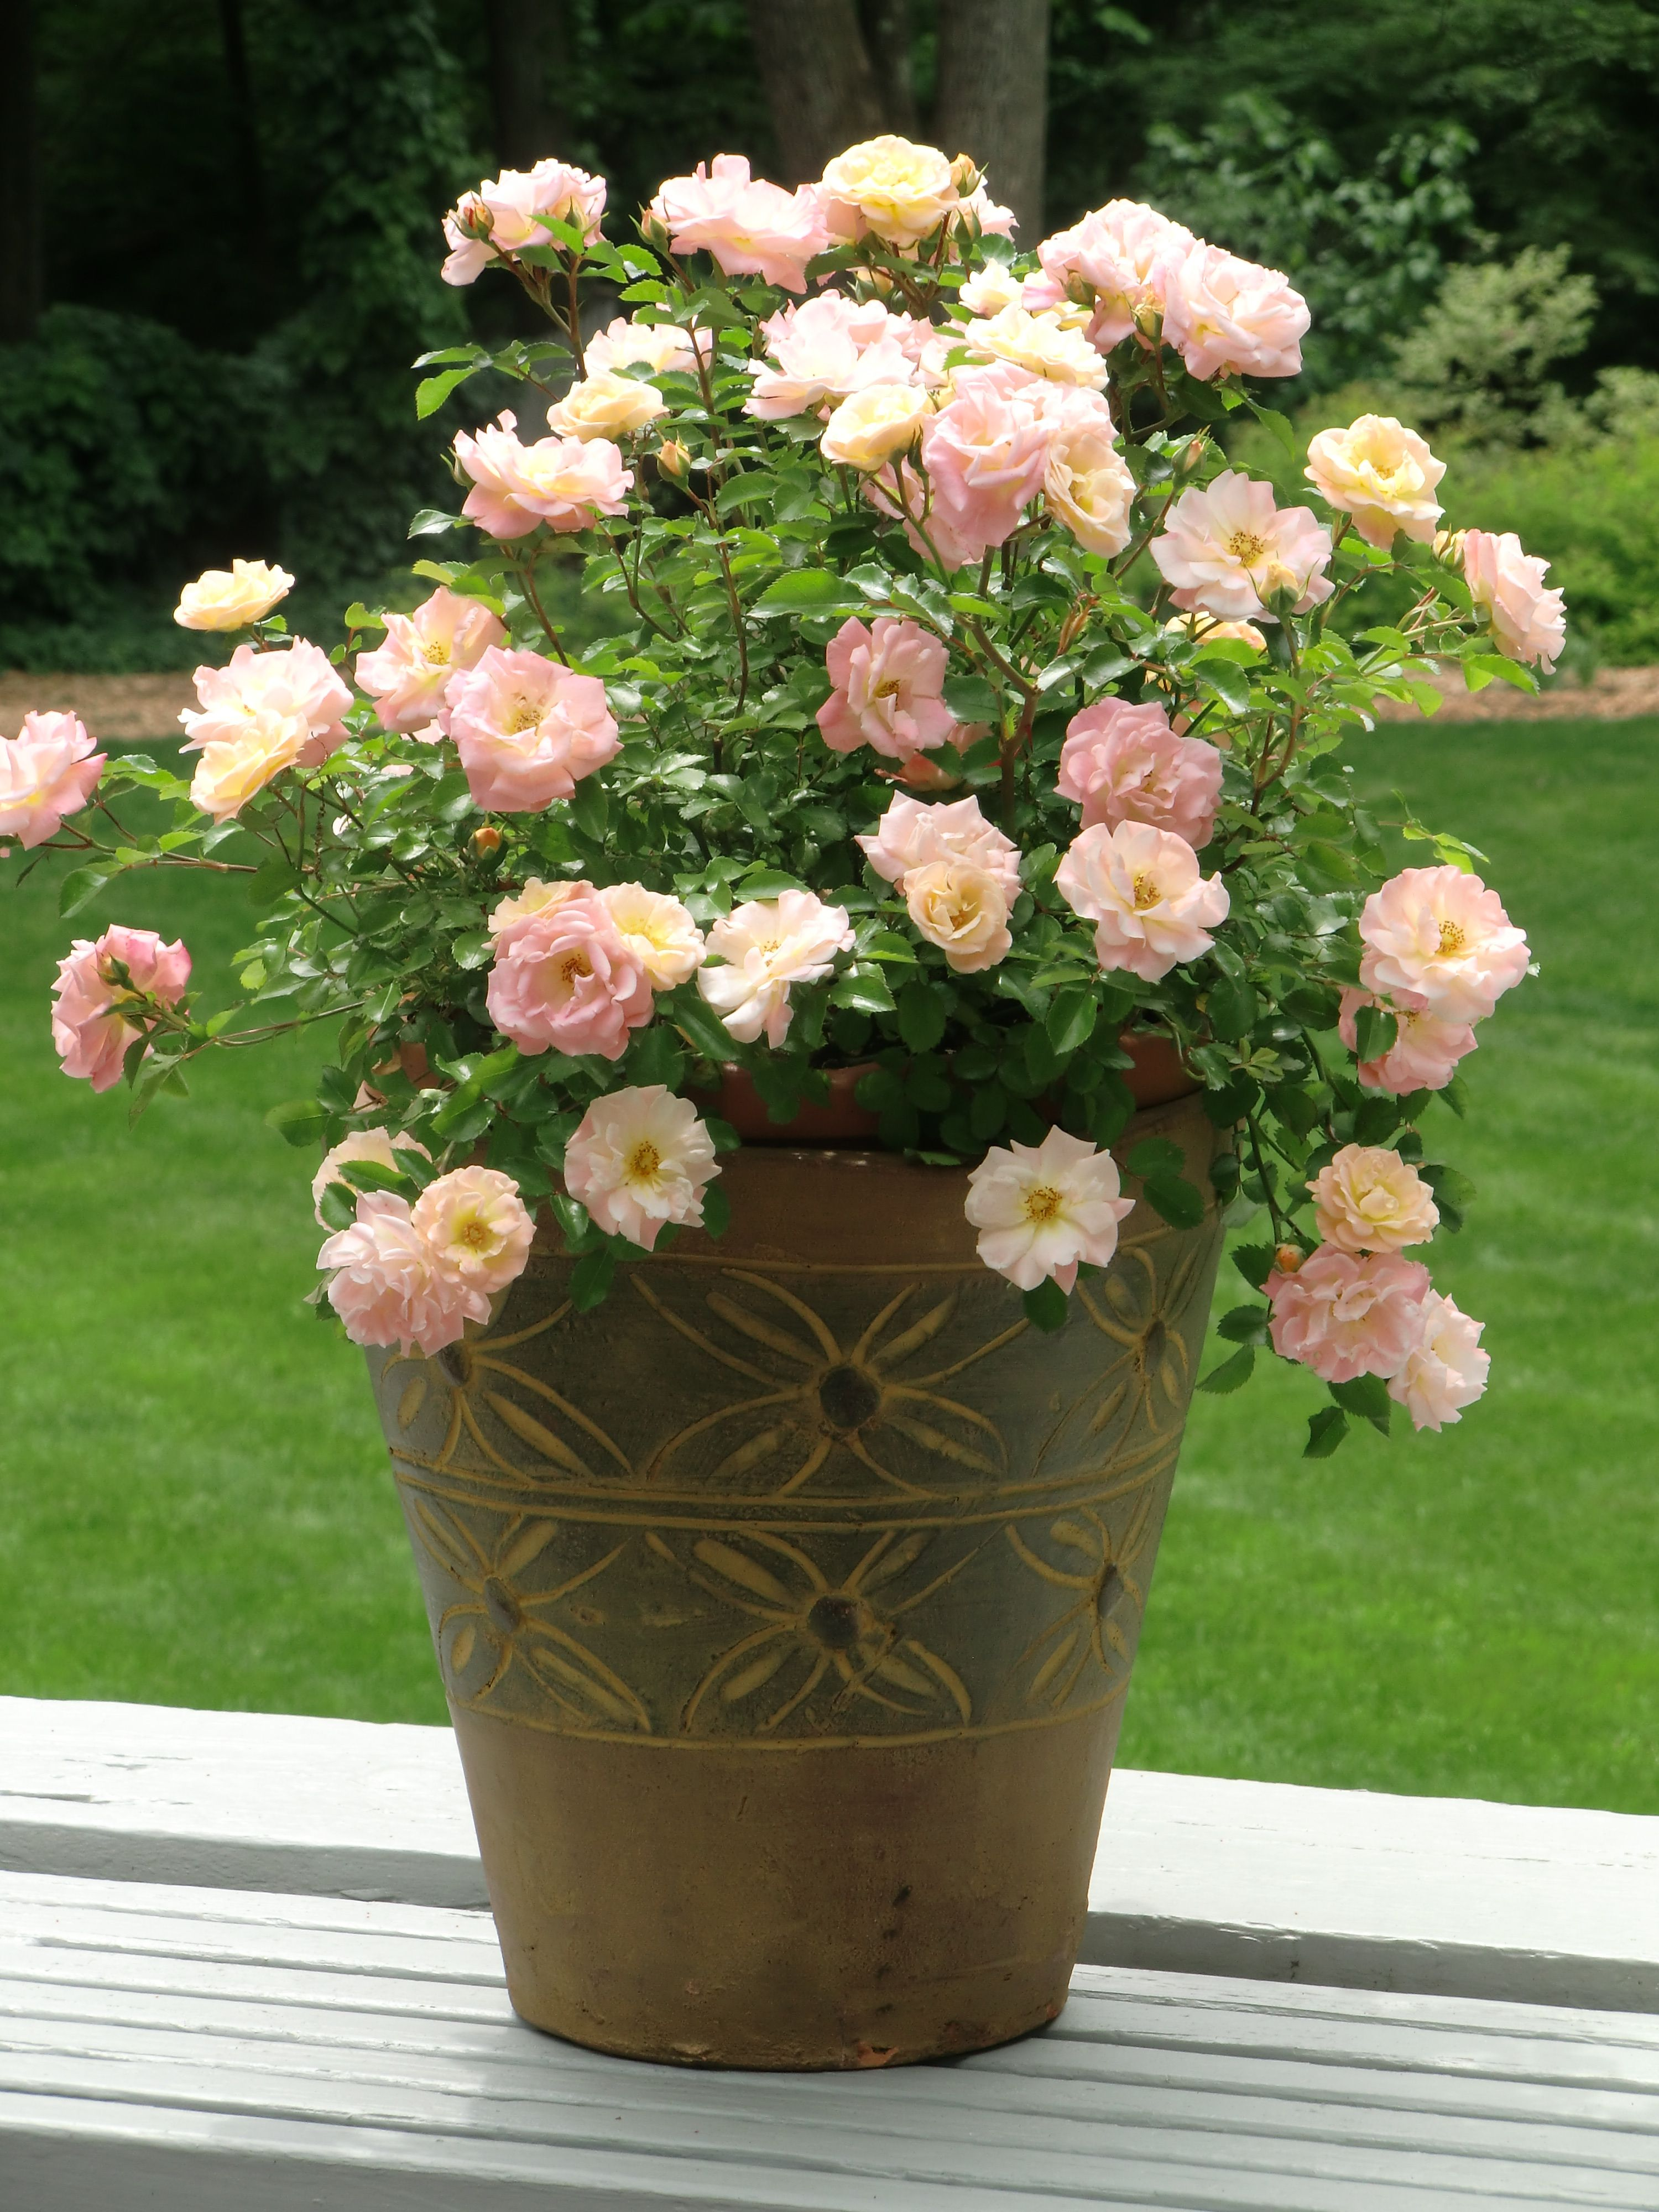 peach drift roses in containers - Bing Images | Roses | Pinterest ...